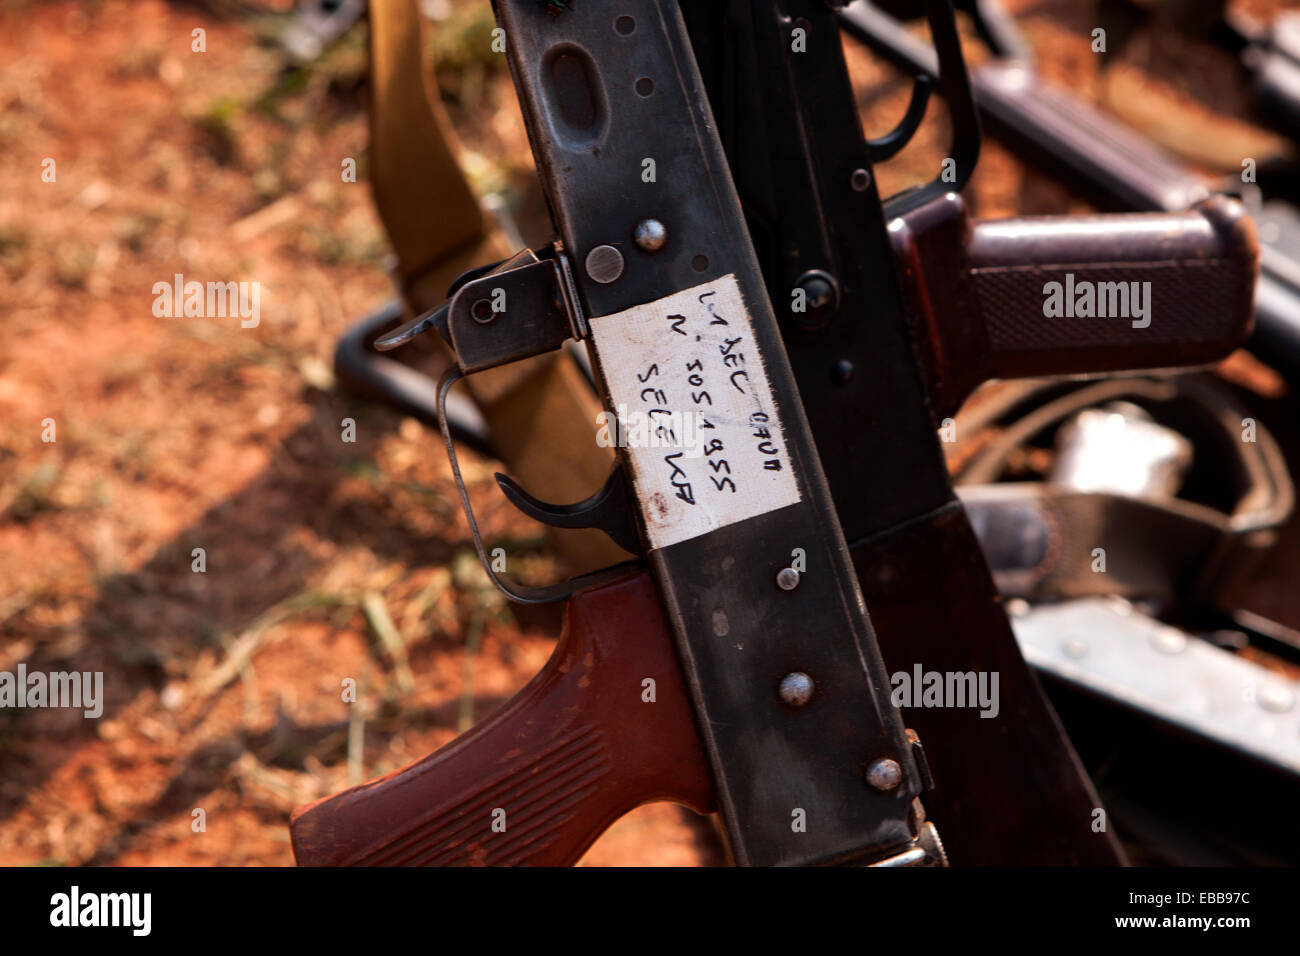 Machine gun confiscated from Seleka forces by French troops in Bangui, Central African Republic - Stock Image